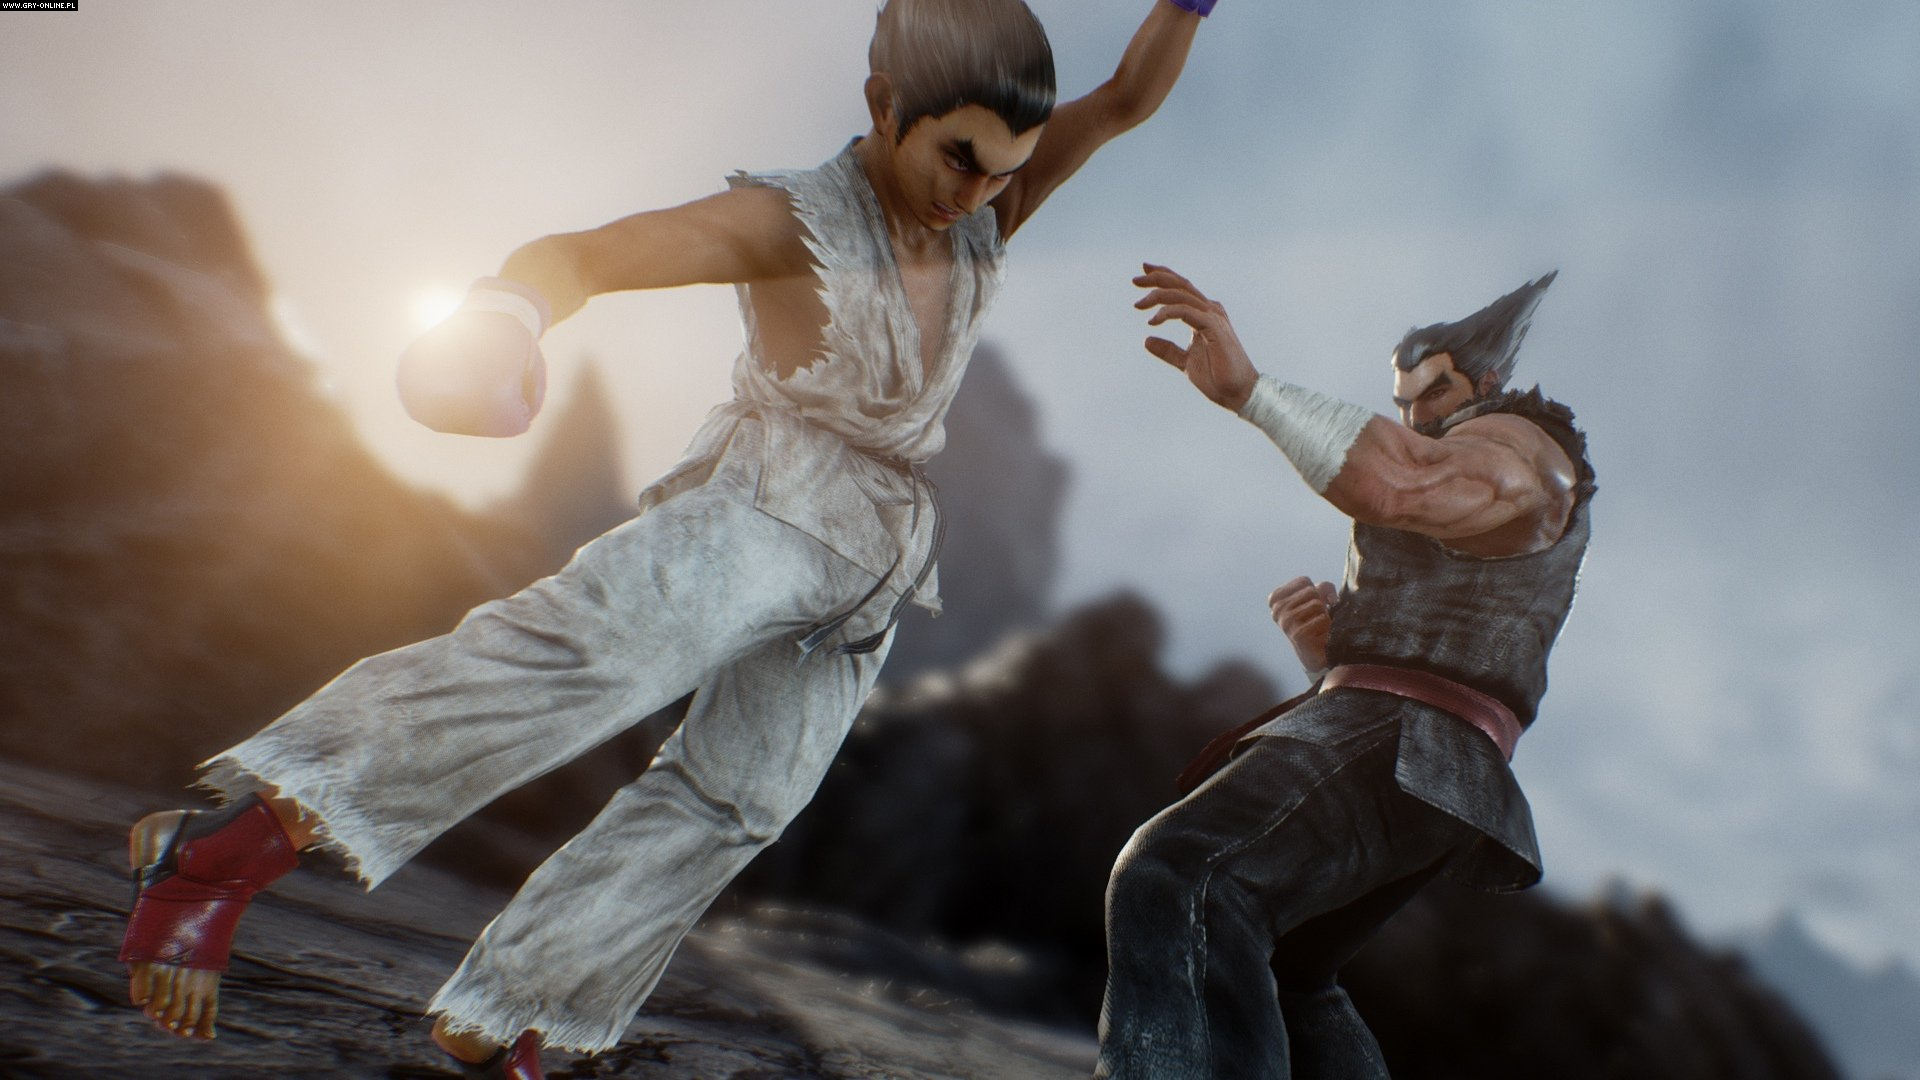 Tekken 7 PC, PS4, XONE Games Image 105/145, Bandai Namco Entertainment